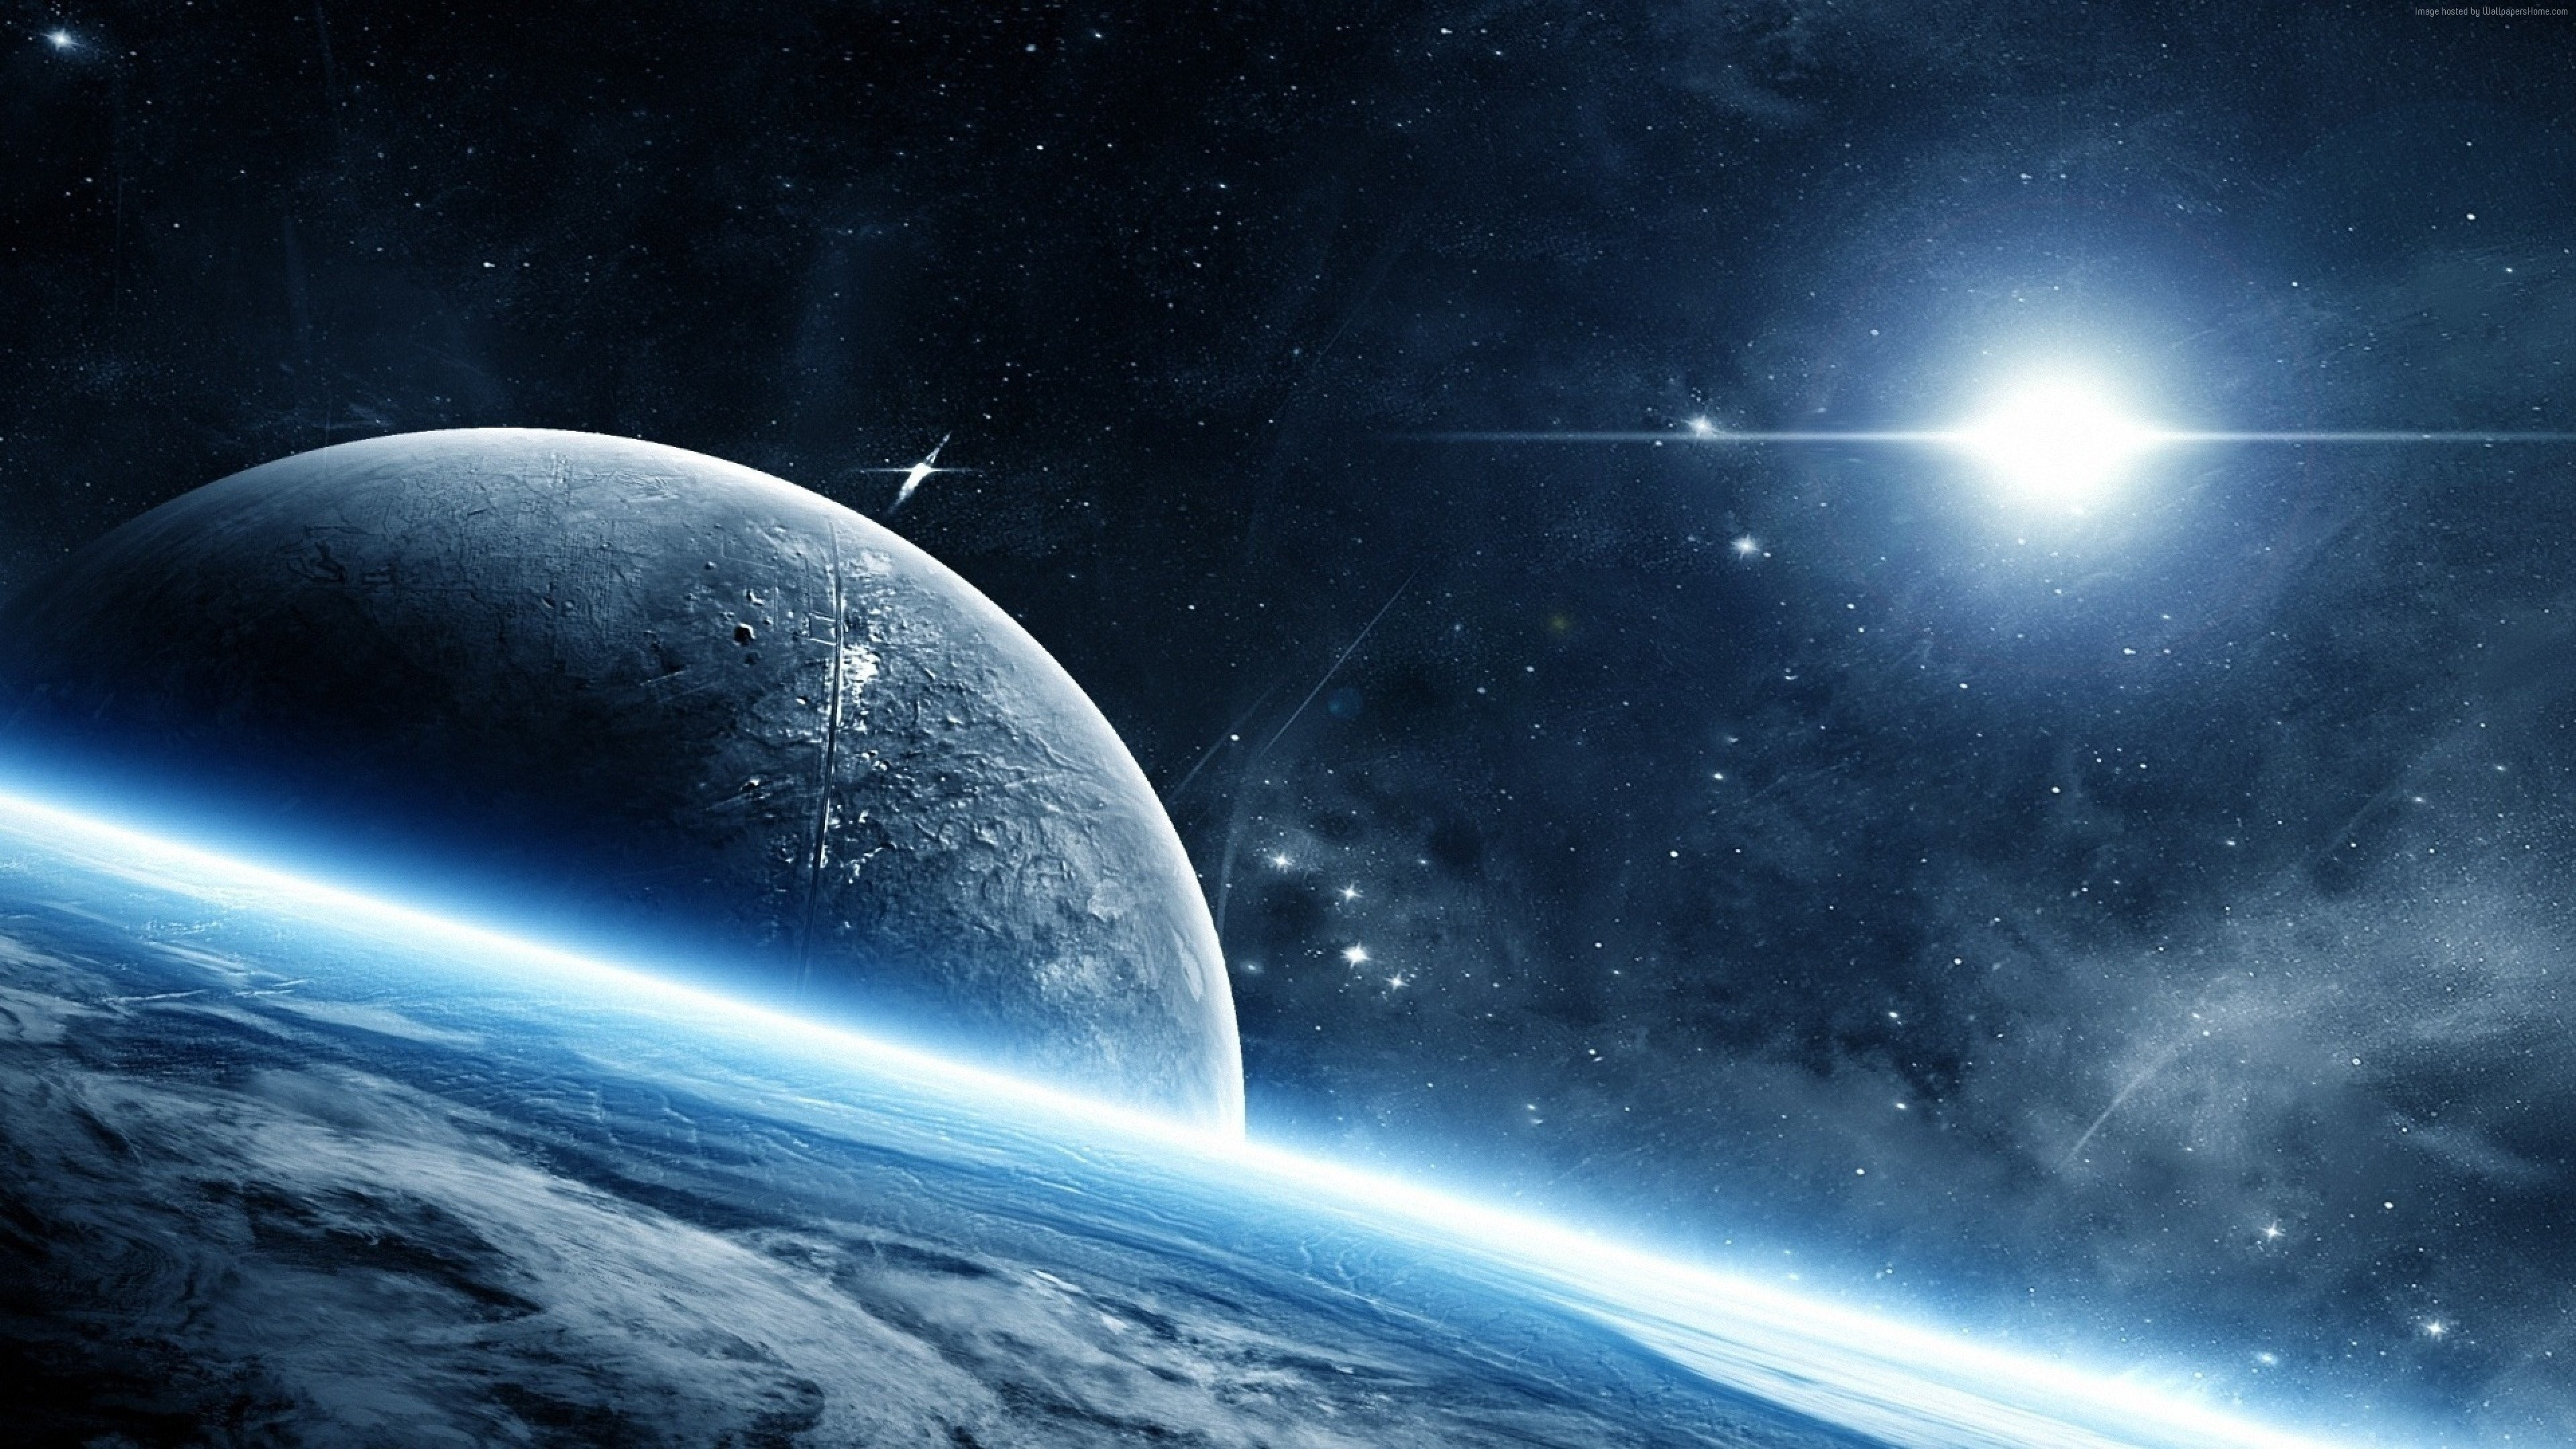 Space, Galaxy and Planets 4k Wallpapers and Backgrounds